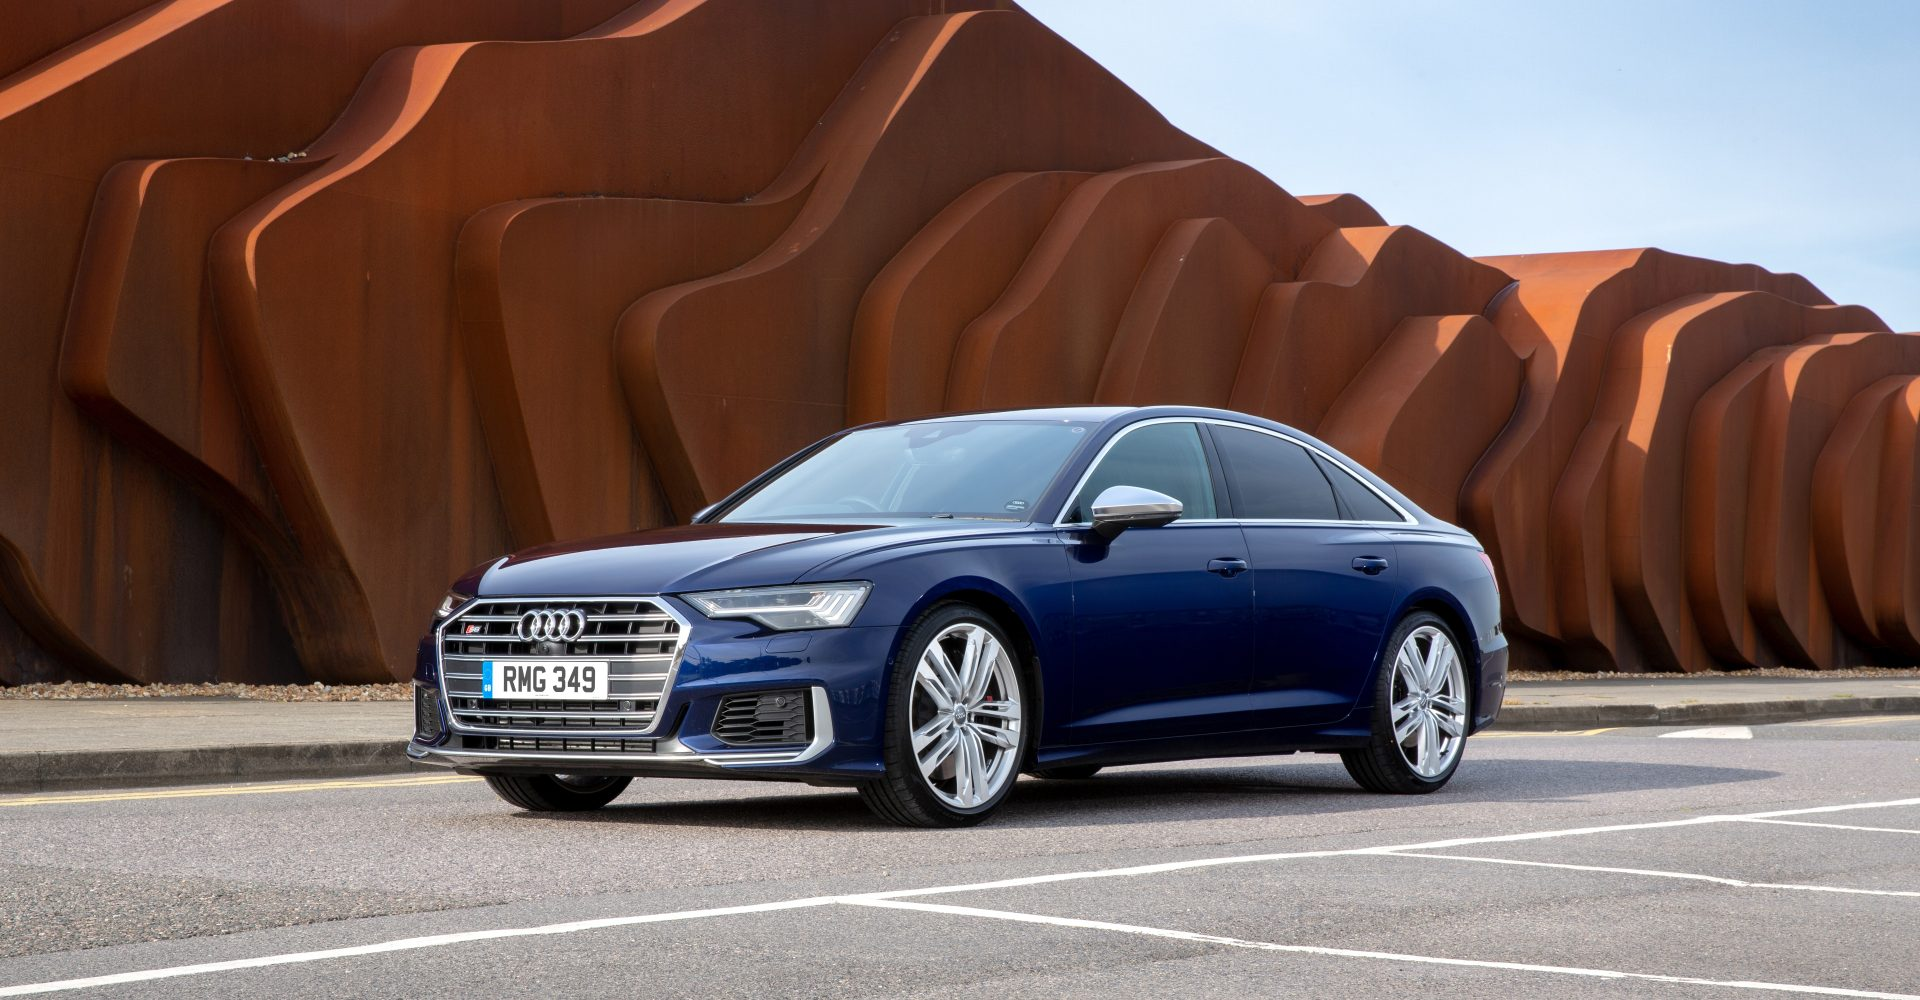 UK Drive: The Audi S6 Saloon is a fantastic all-rounder